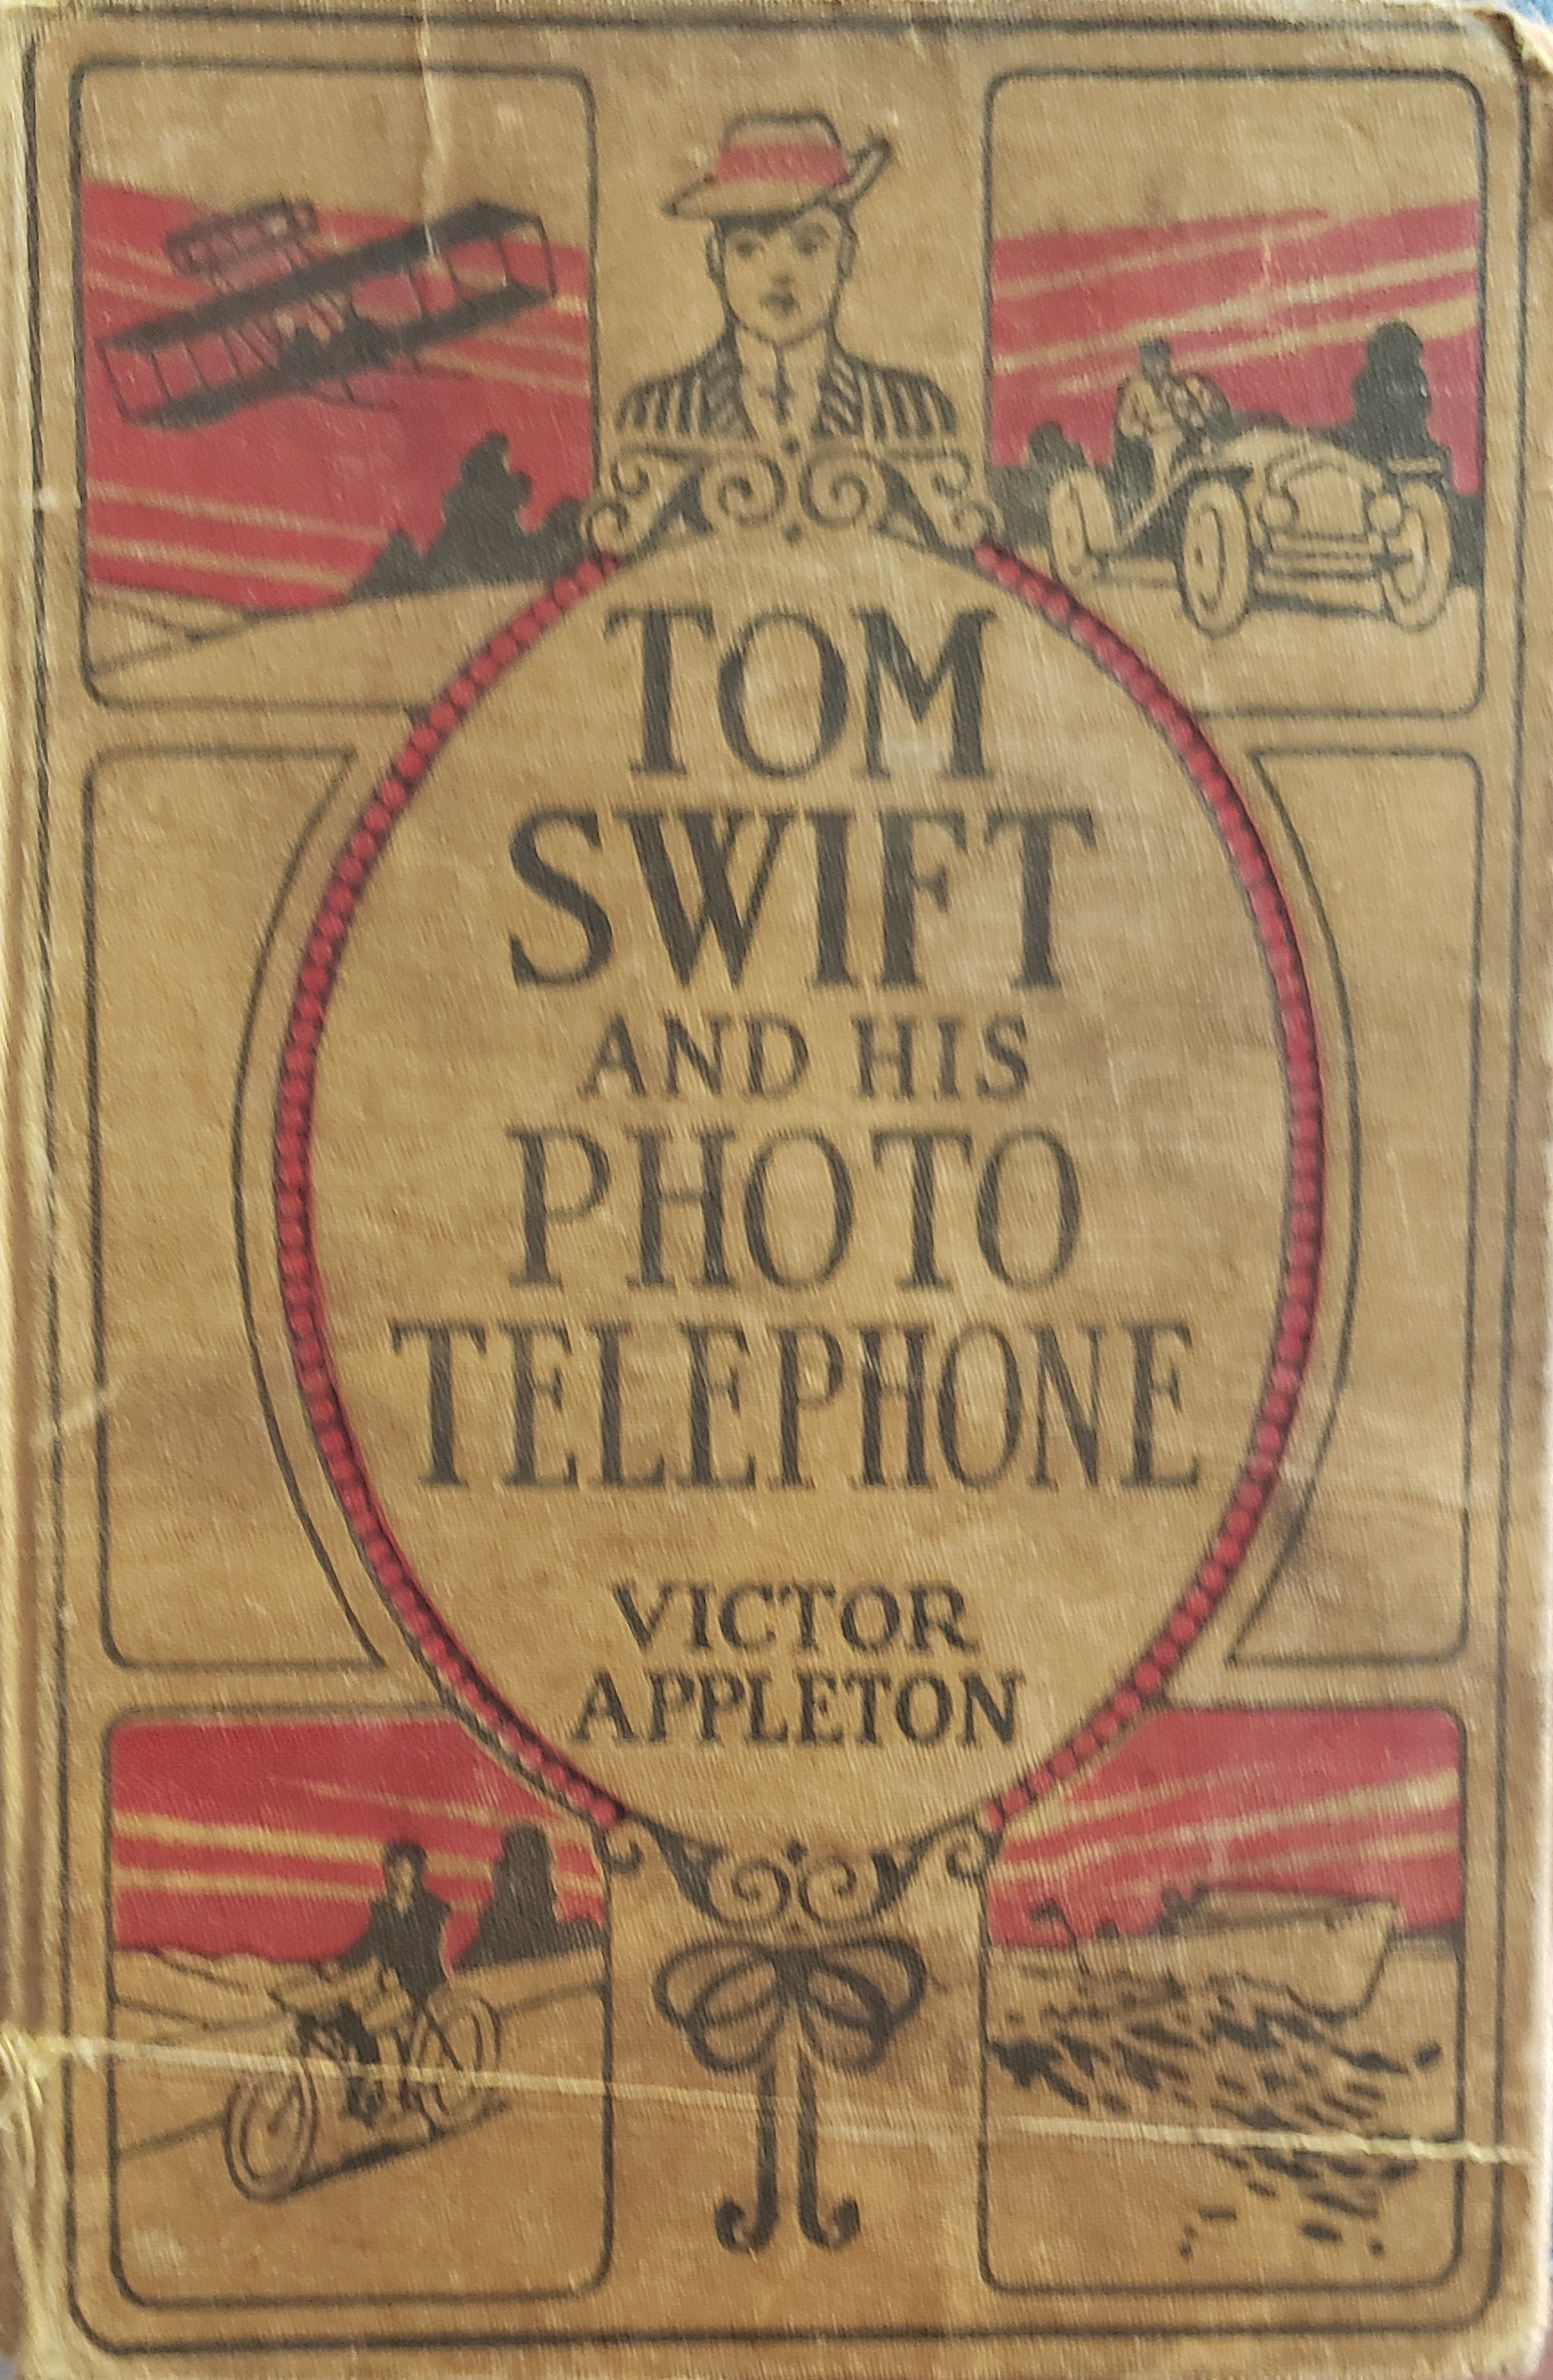 Tom Swift and His Photo Telephone.